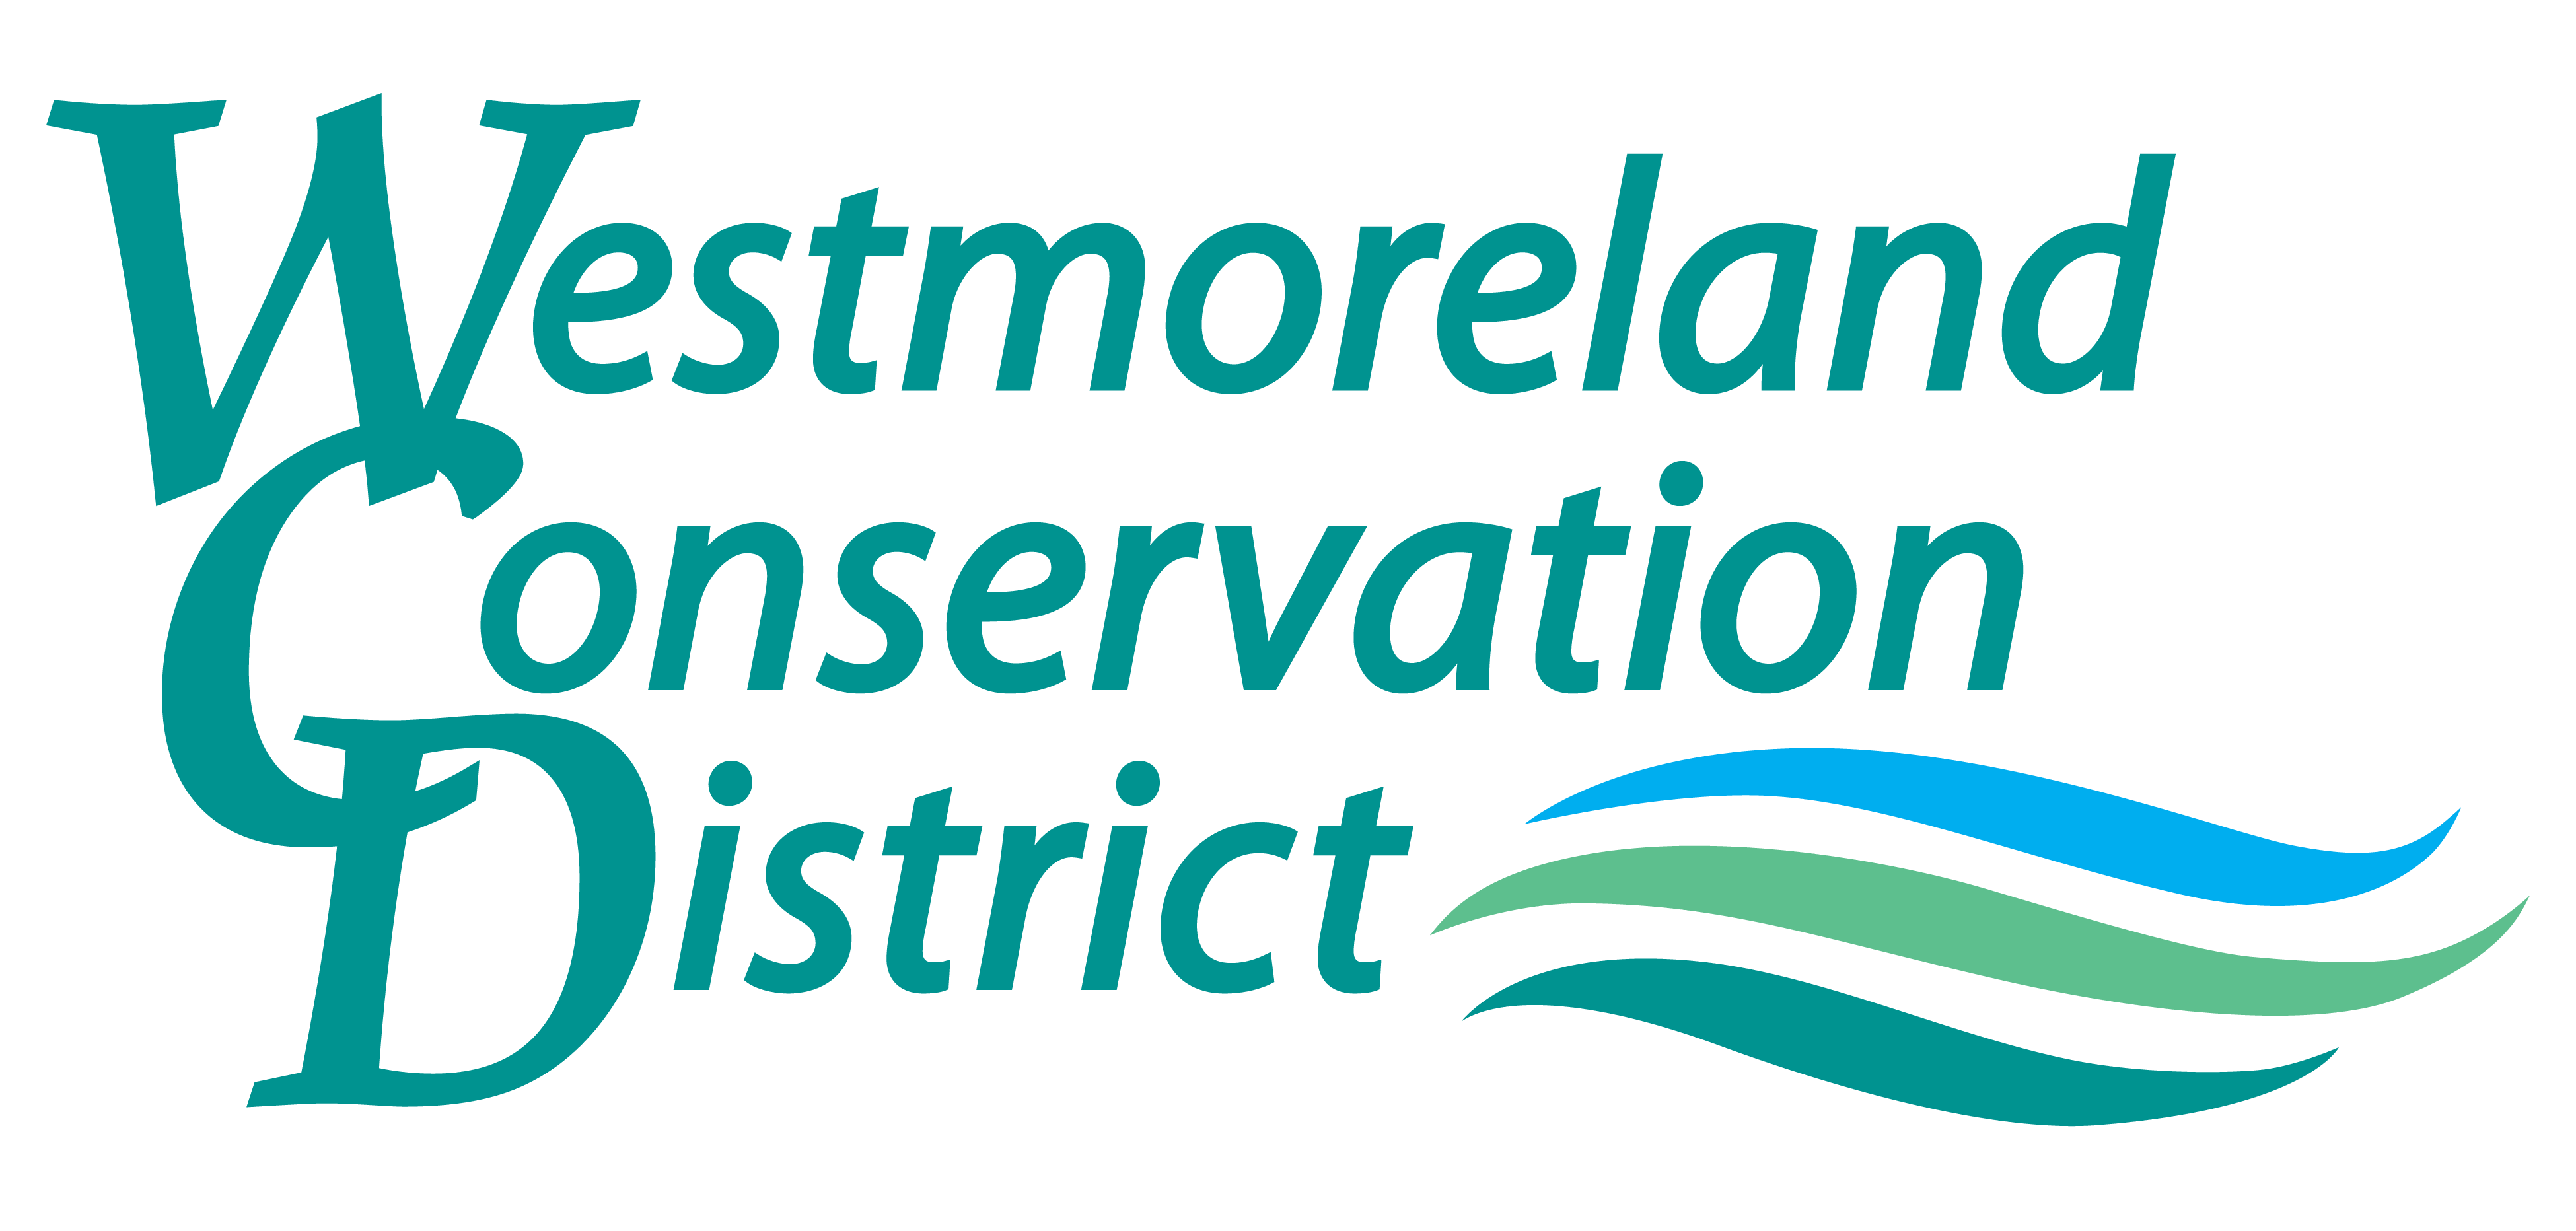 Westmoreland Conservation District